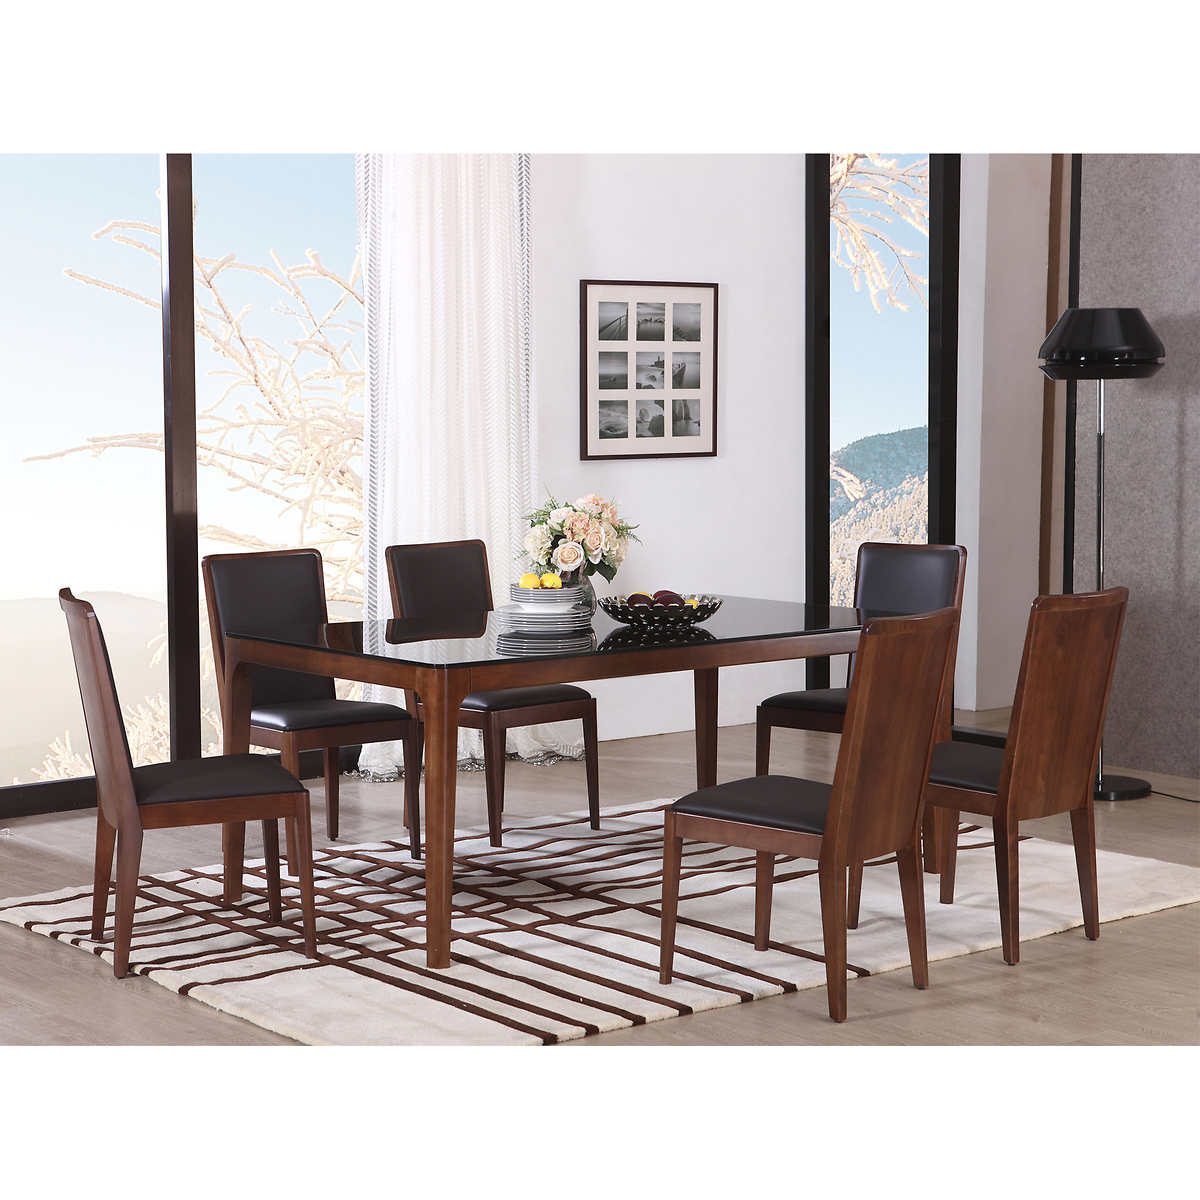 Awesome Costco Dining Room Sets Rugoingmyway rugoingmyway